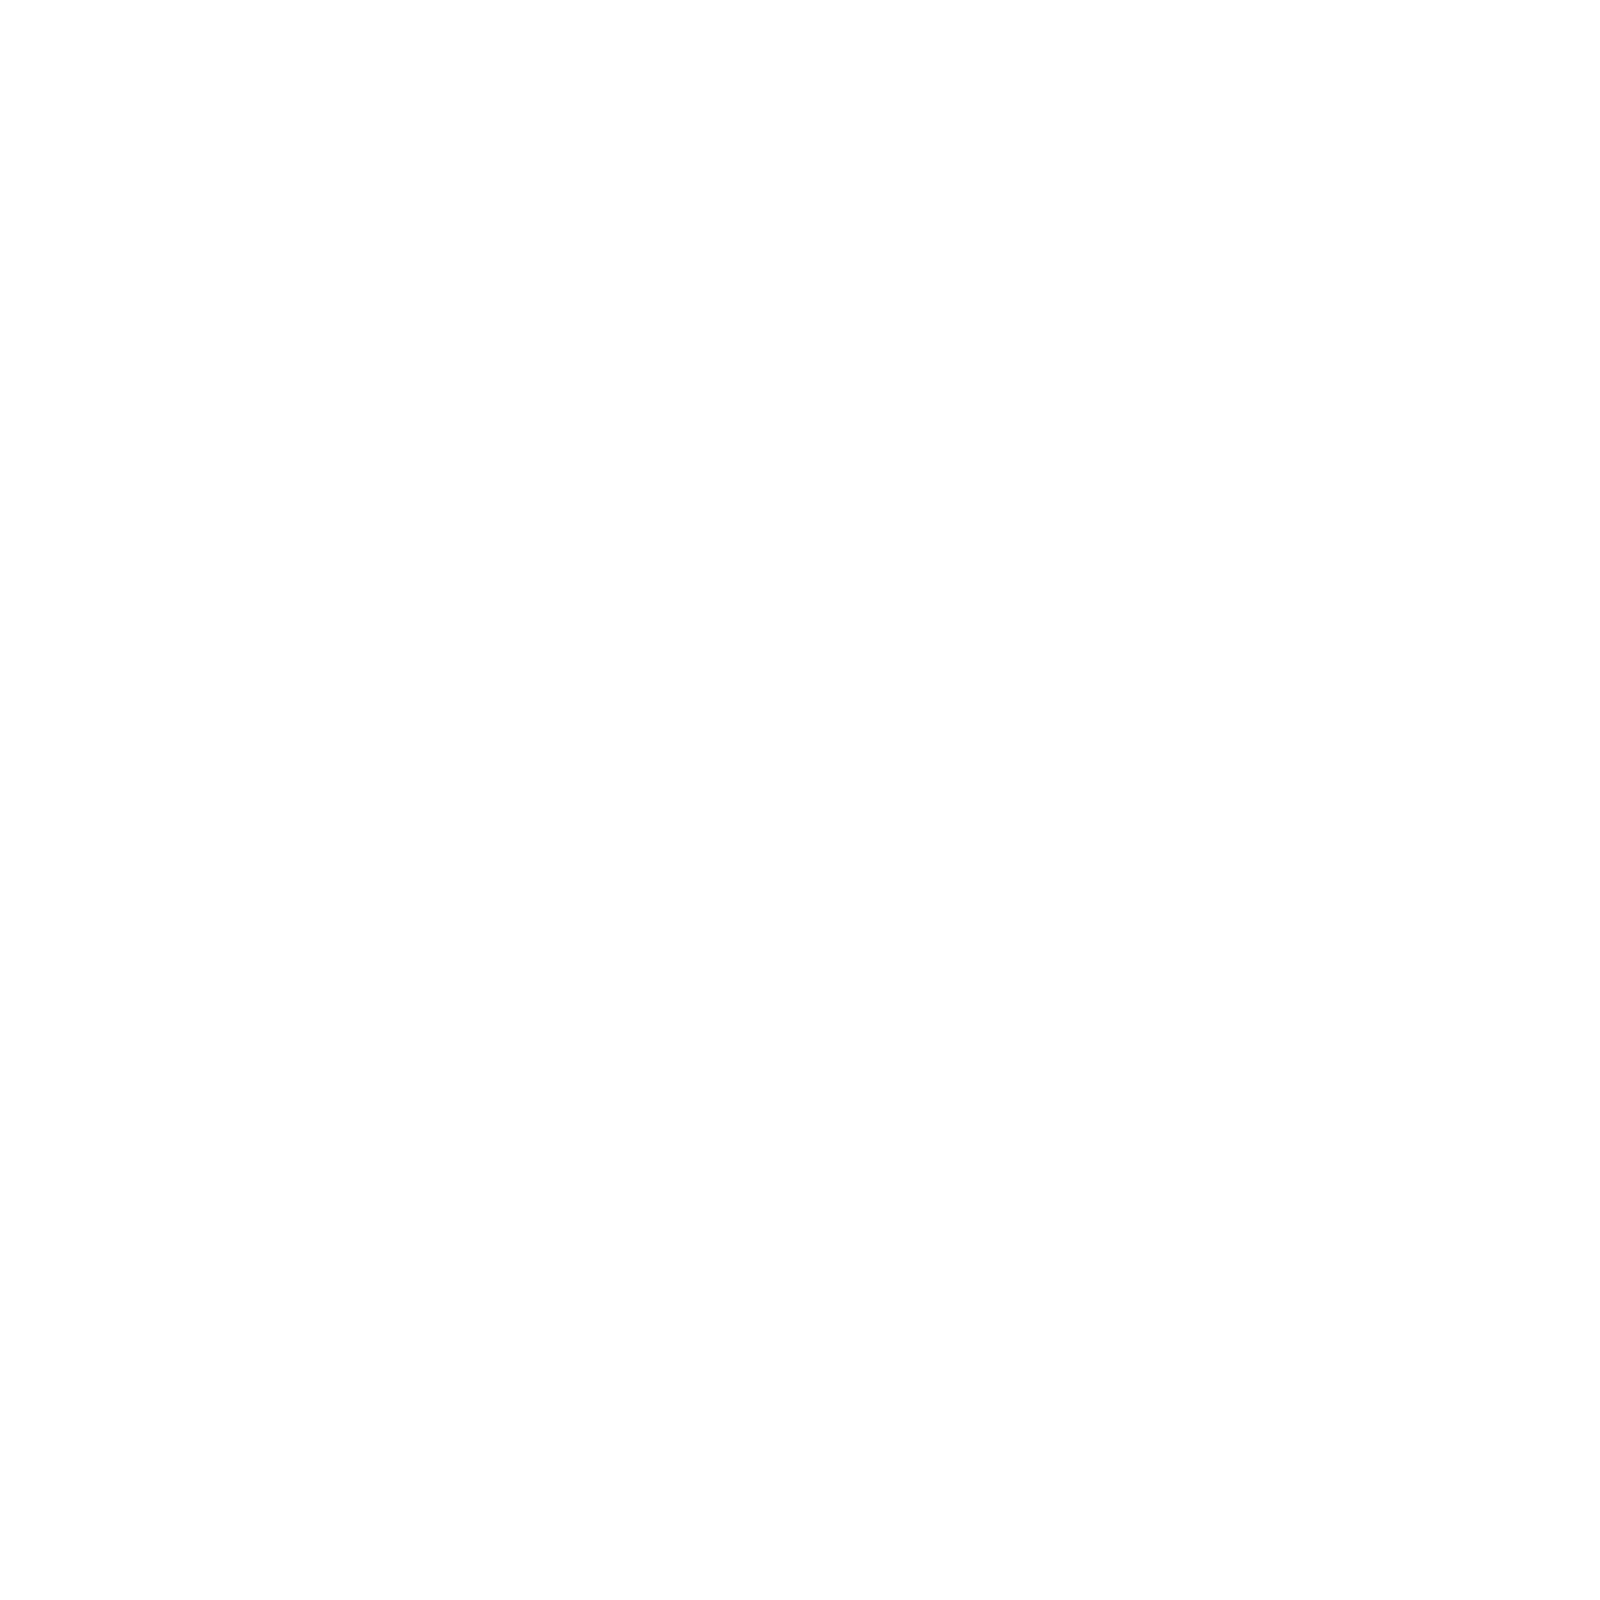 iconfinder_Circled_Twitter_svg_5279123